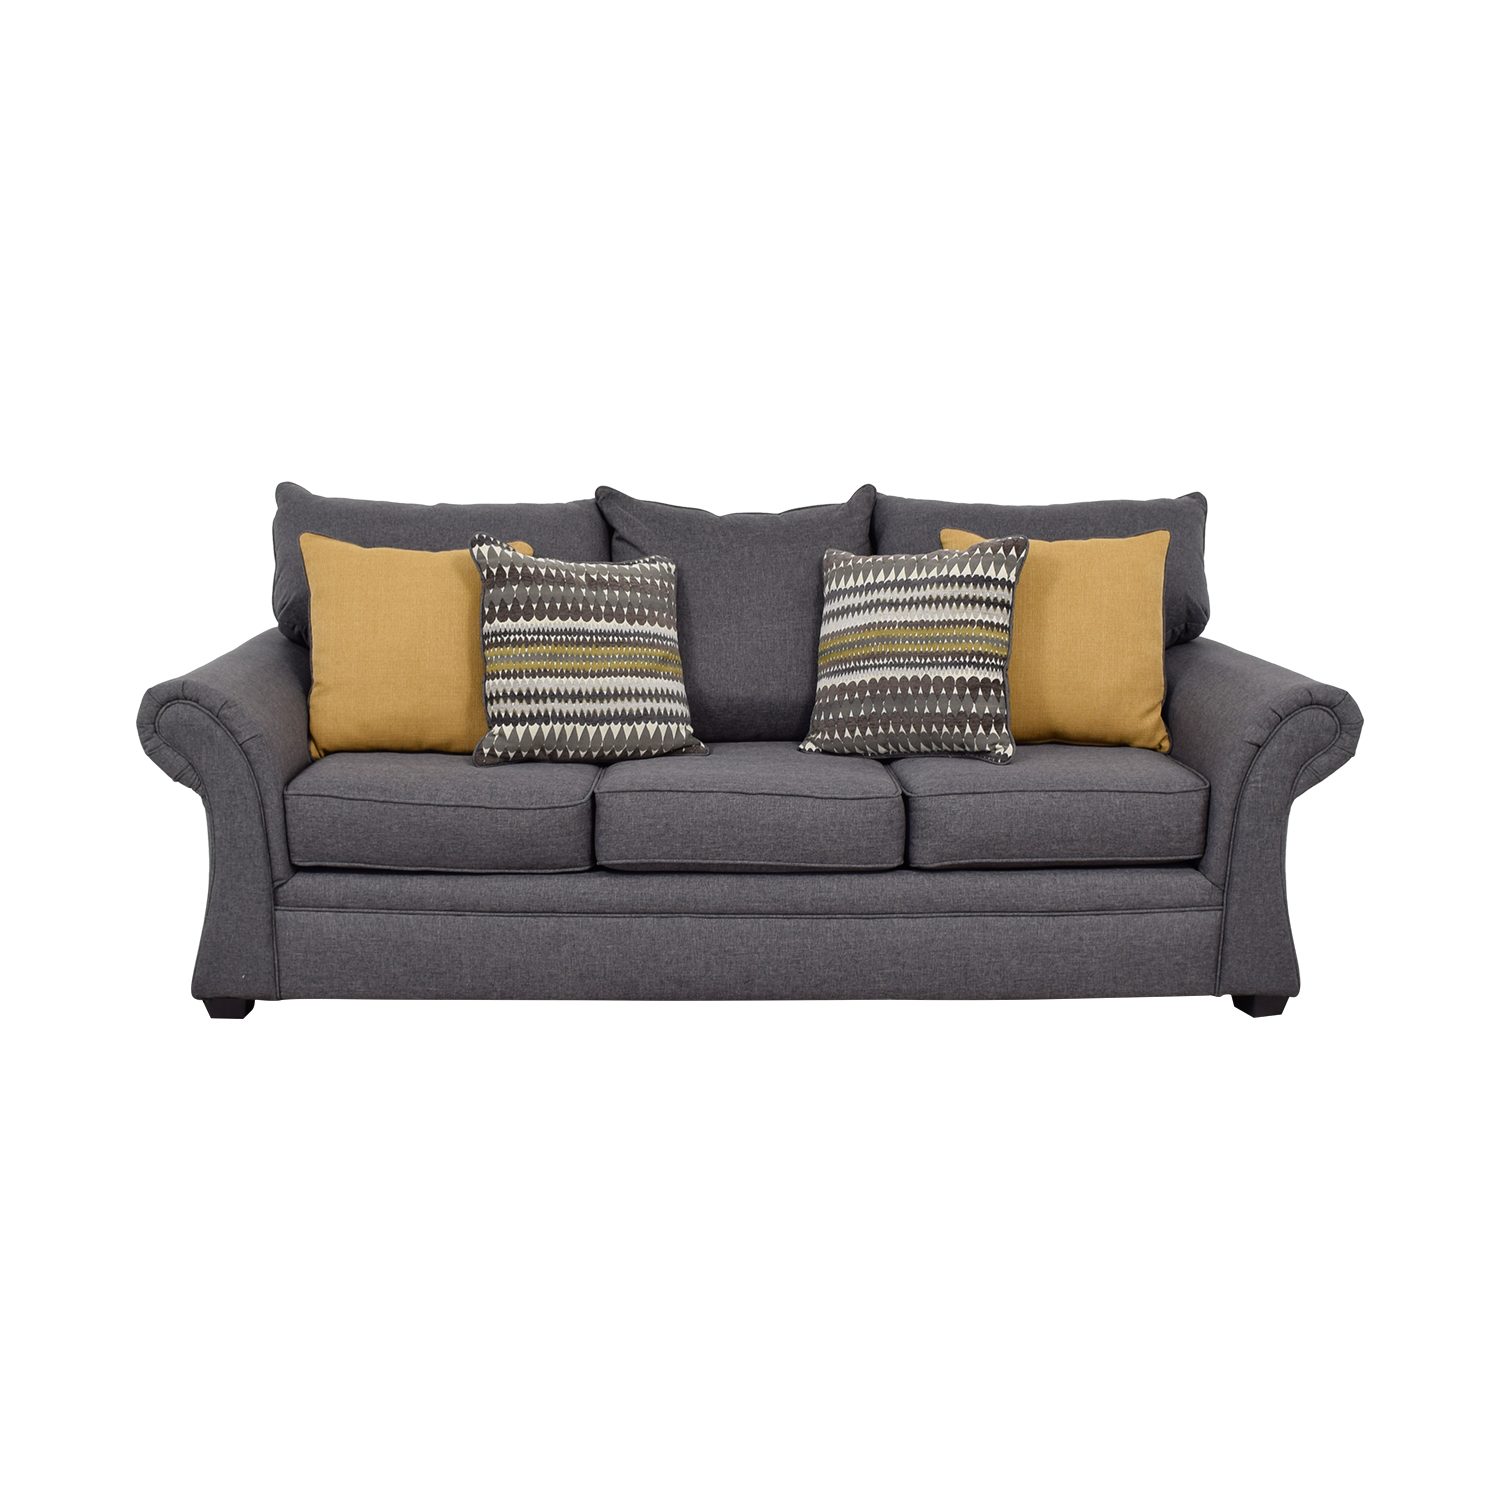 Image of: 50 Off Grey Sofa With Gold Throw Pillows Sofas